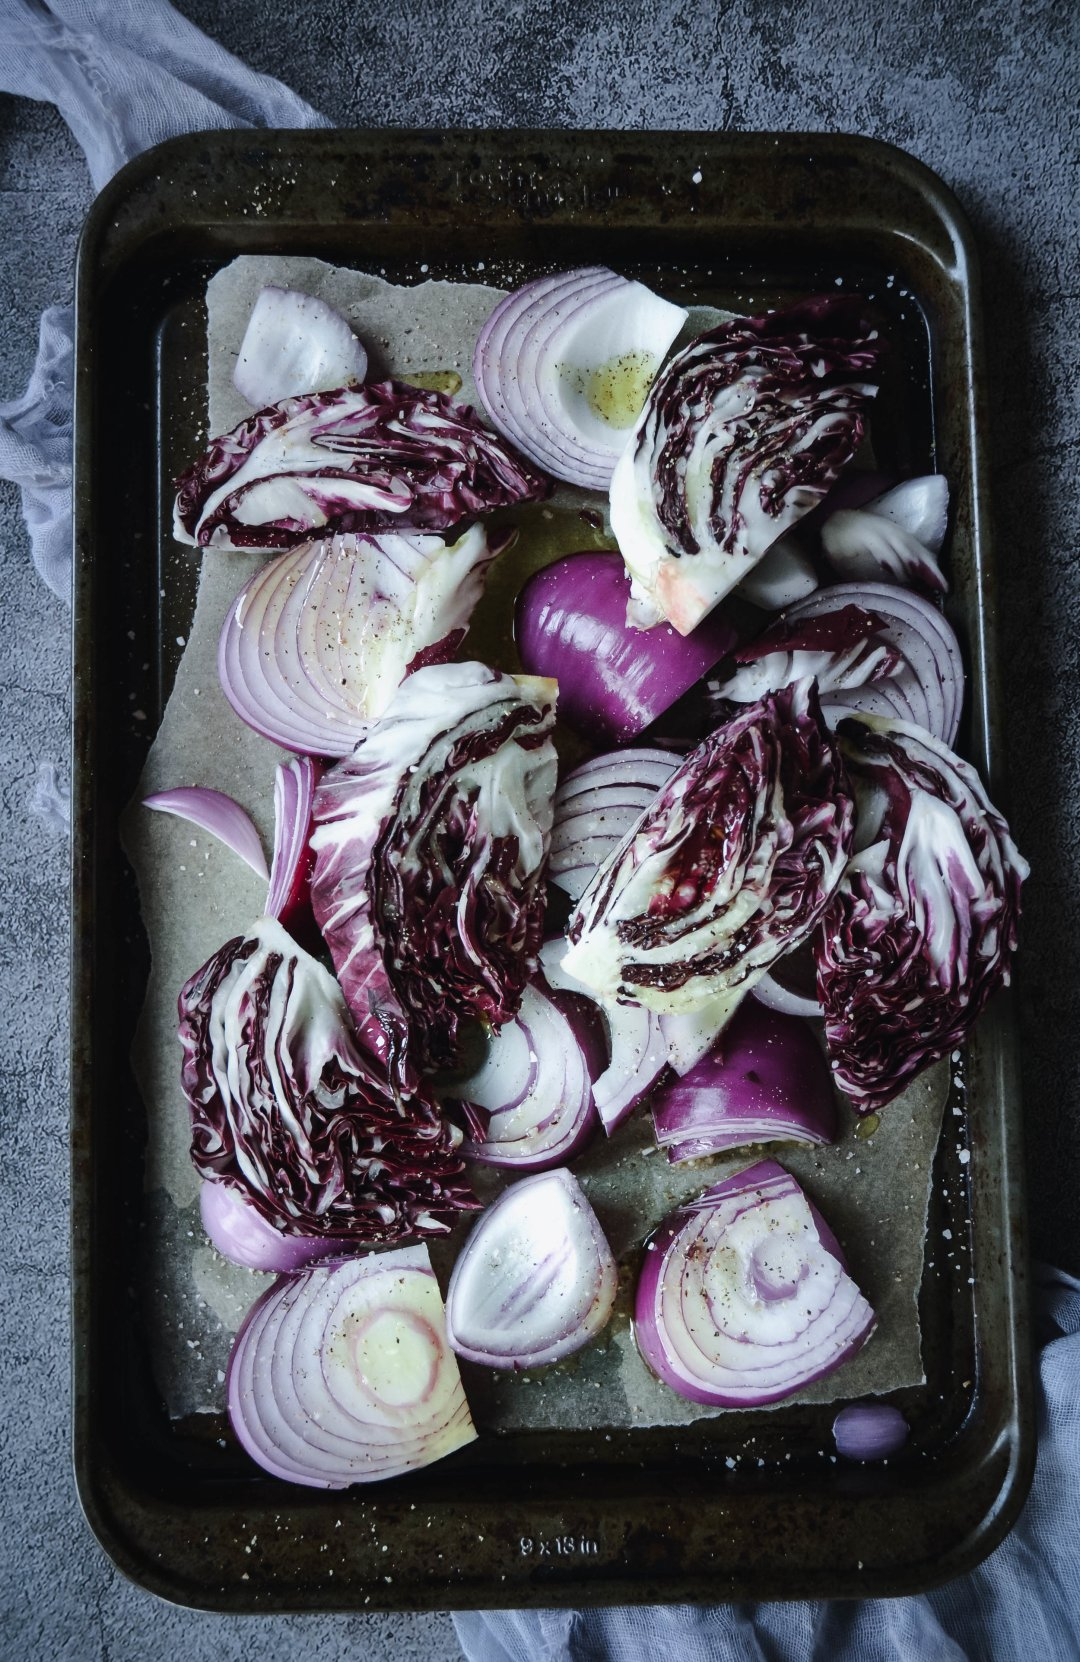 Red onion and radicchio on tray